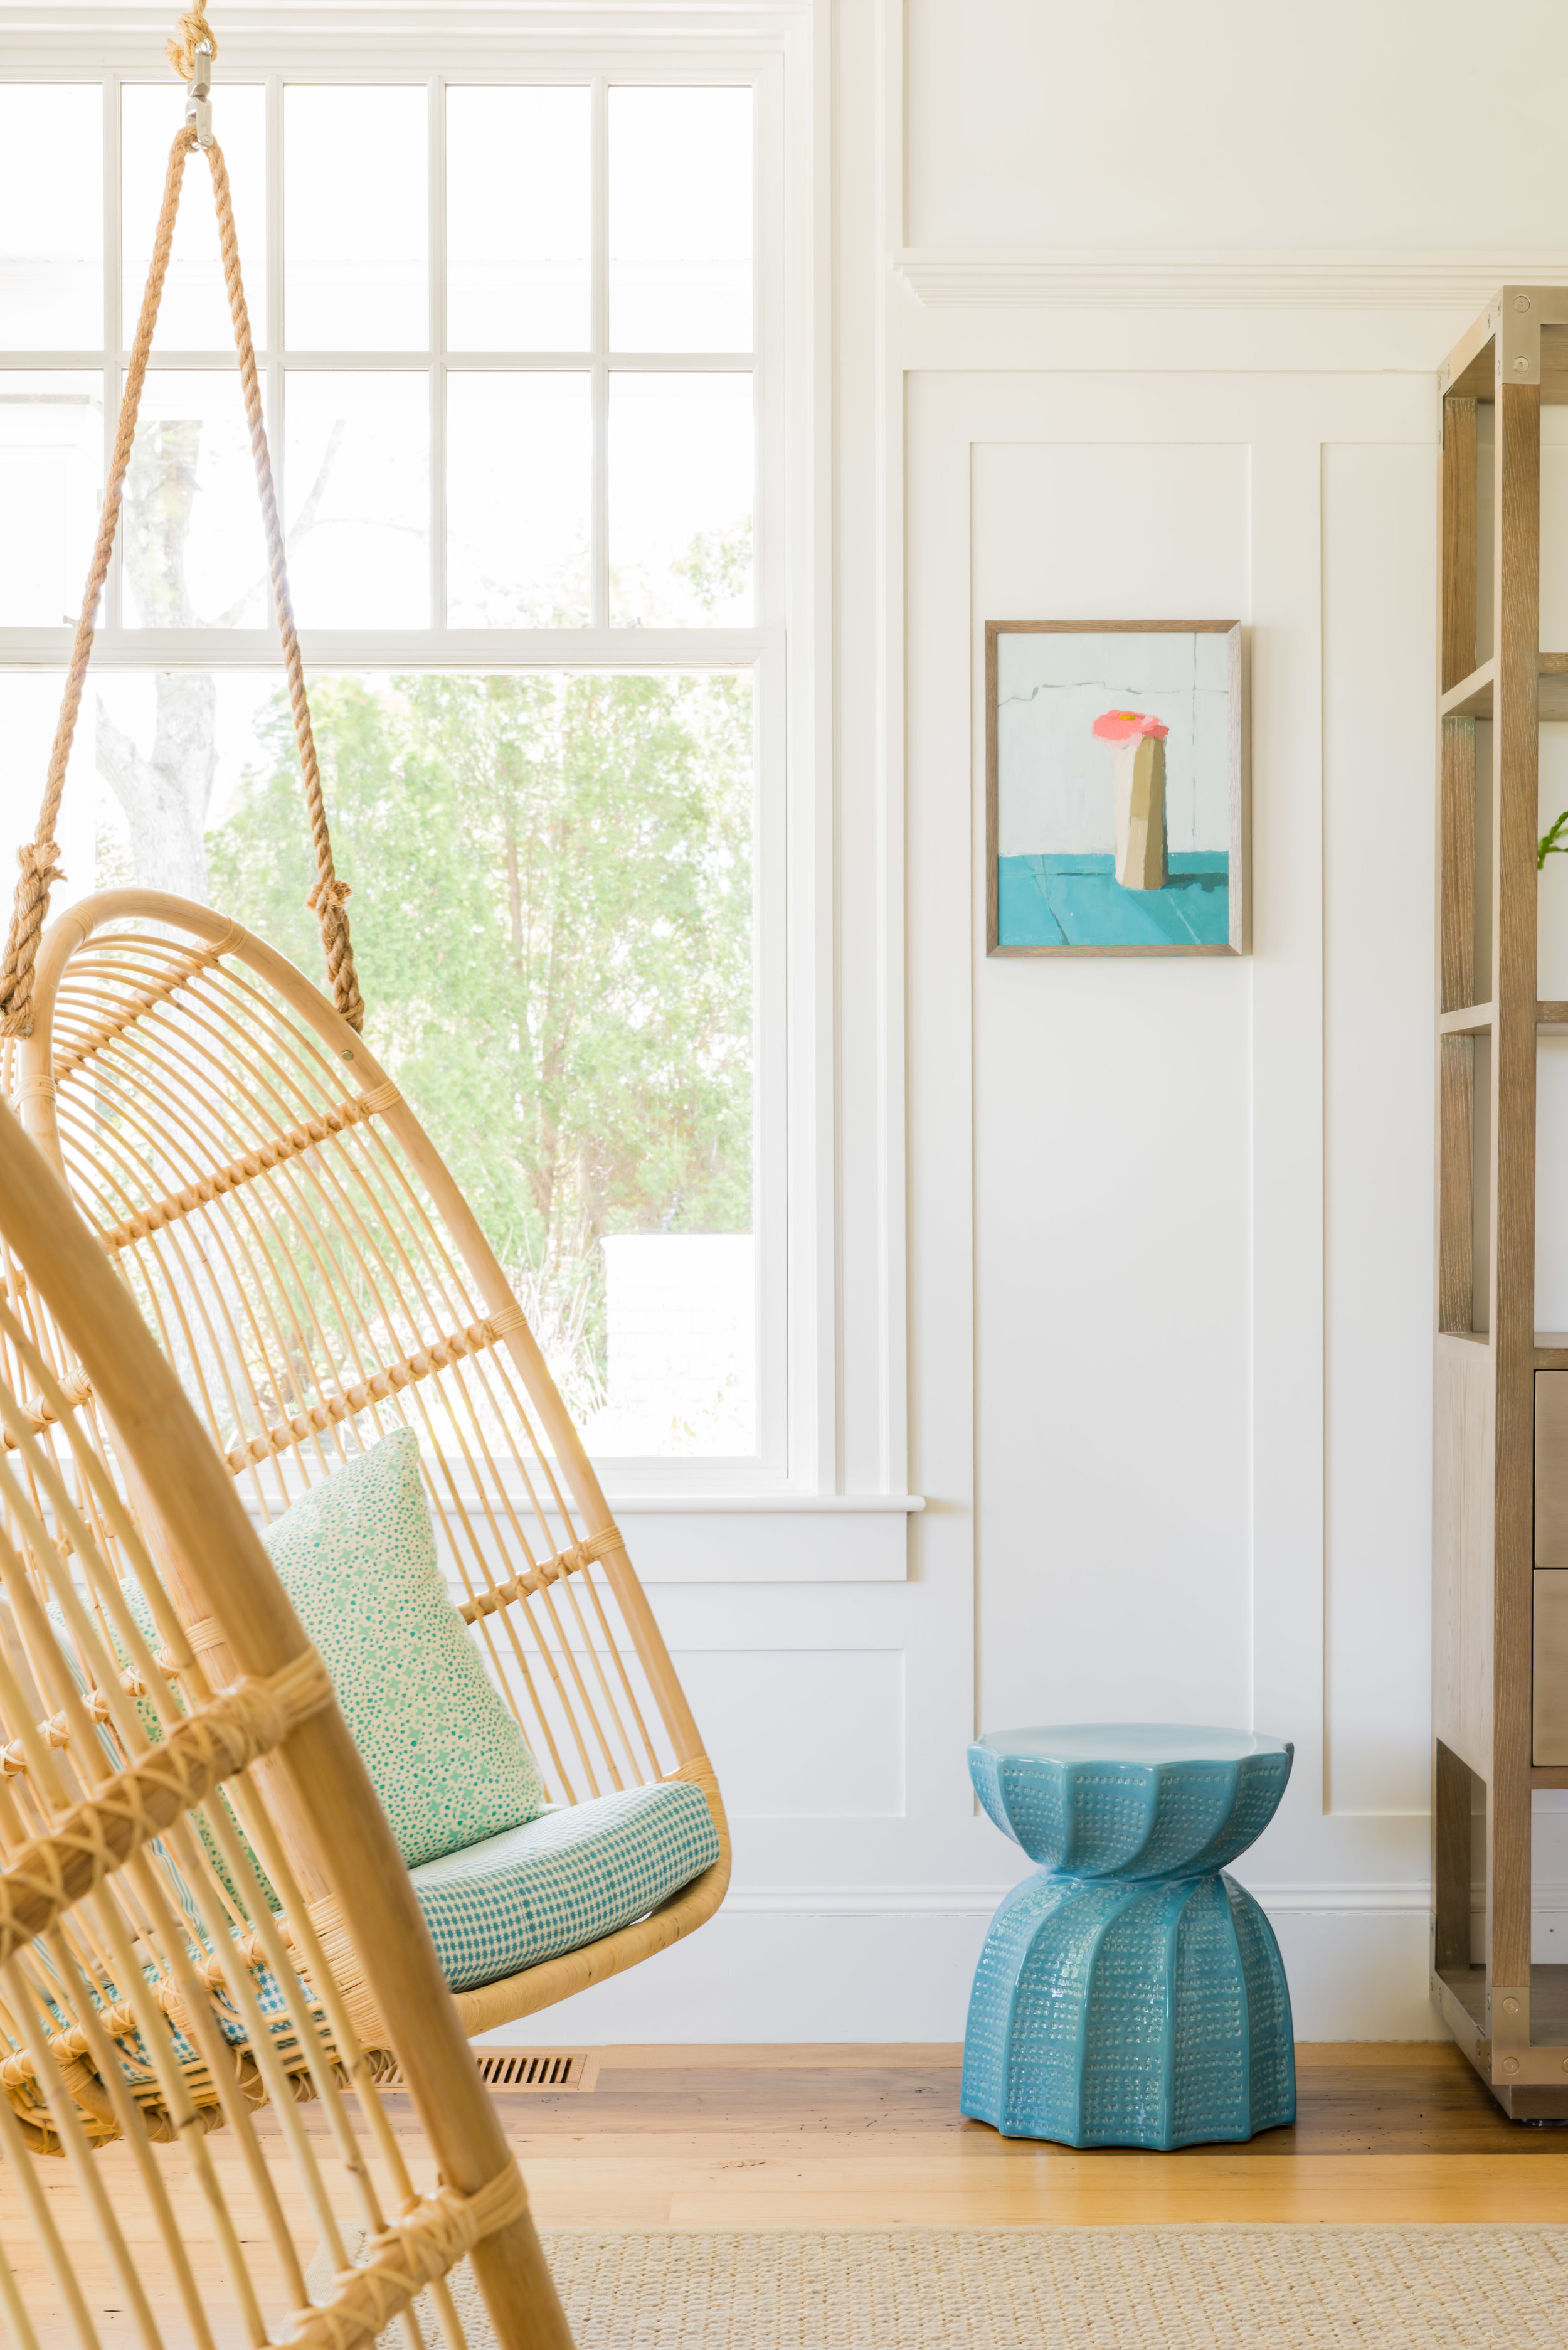 Bea Stool in Soft Blue by  Made Goods ; Renoir Swing Chair by  Sika Design . Design:  Justine Sterling Design  // Photo:  Jessica Delaney